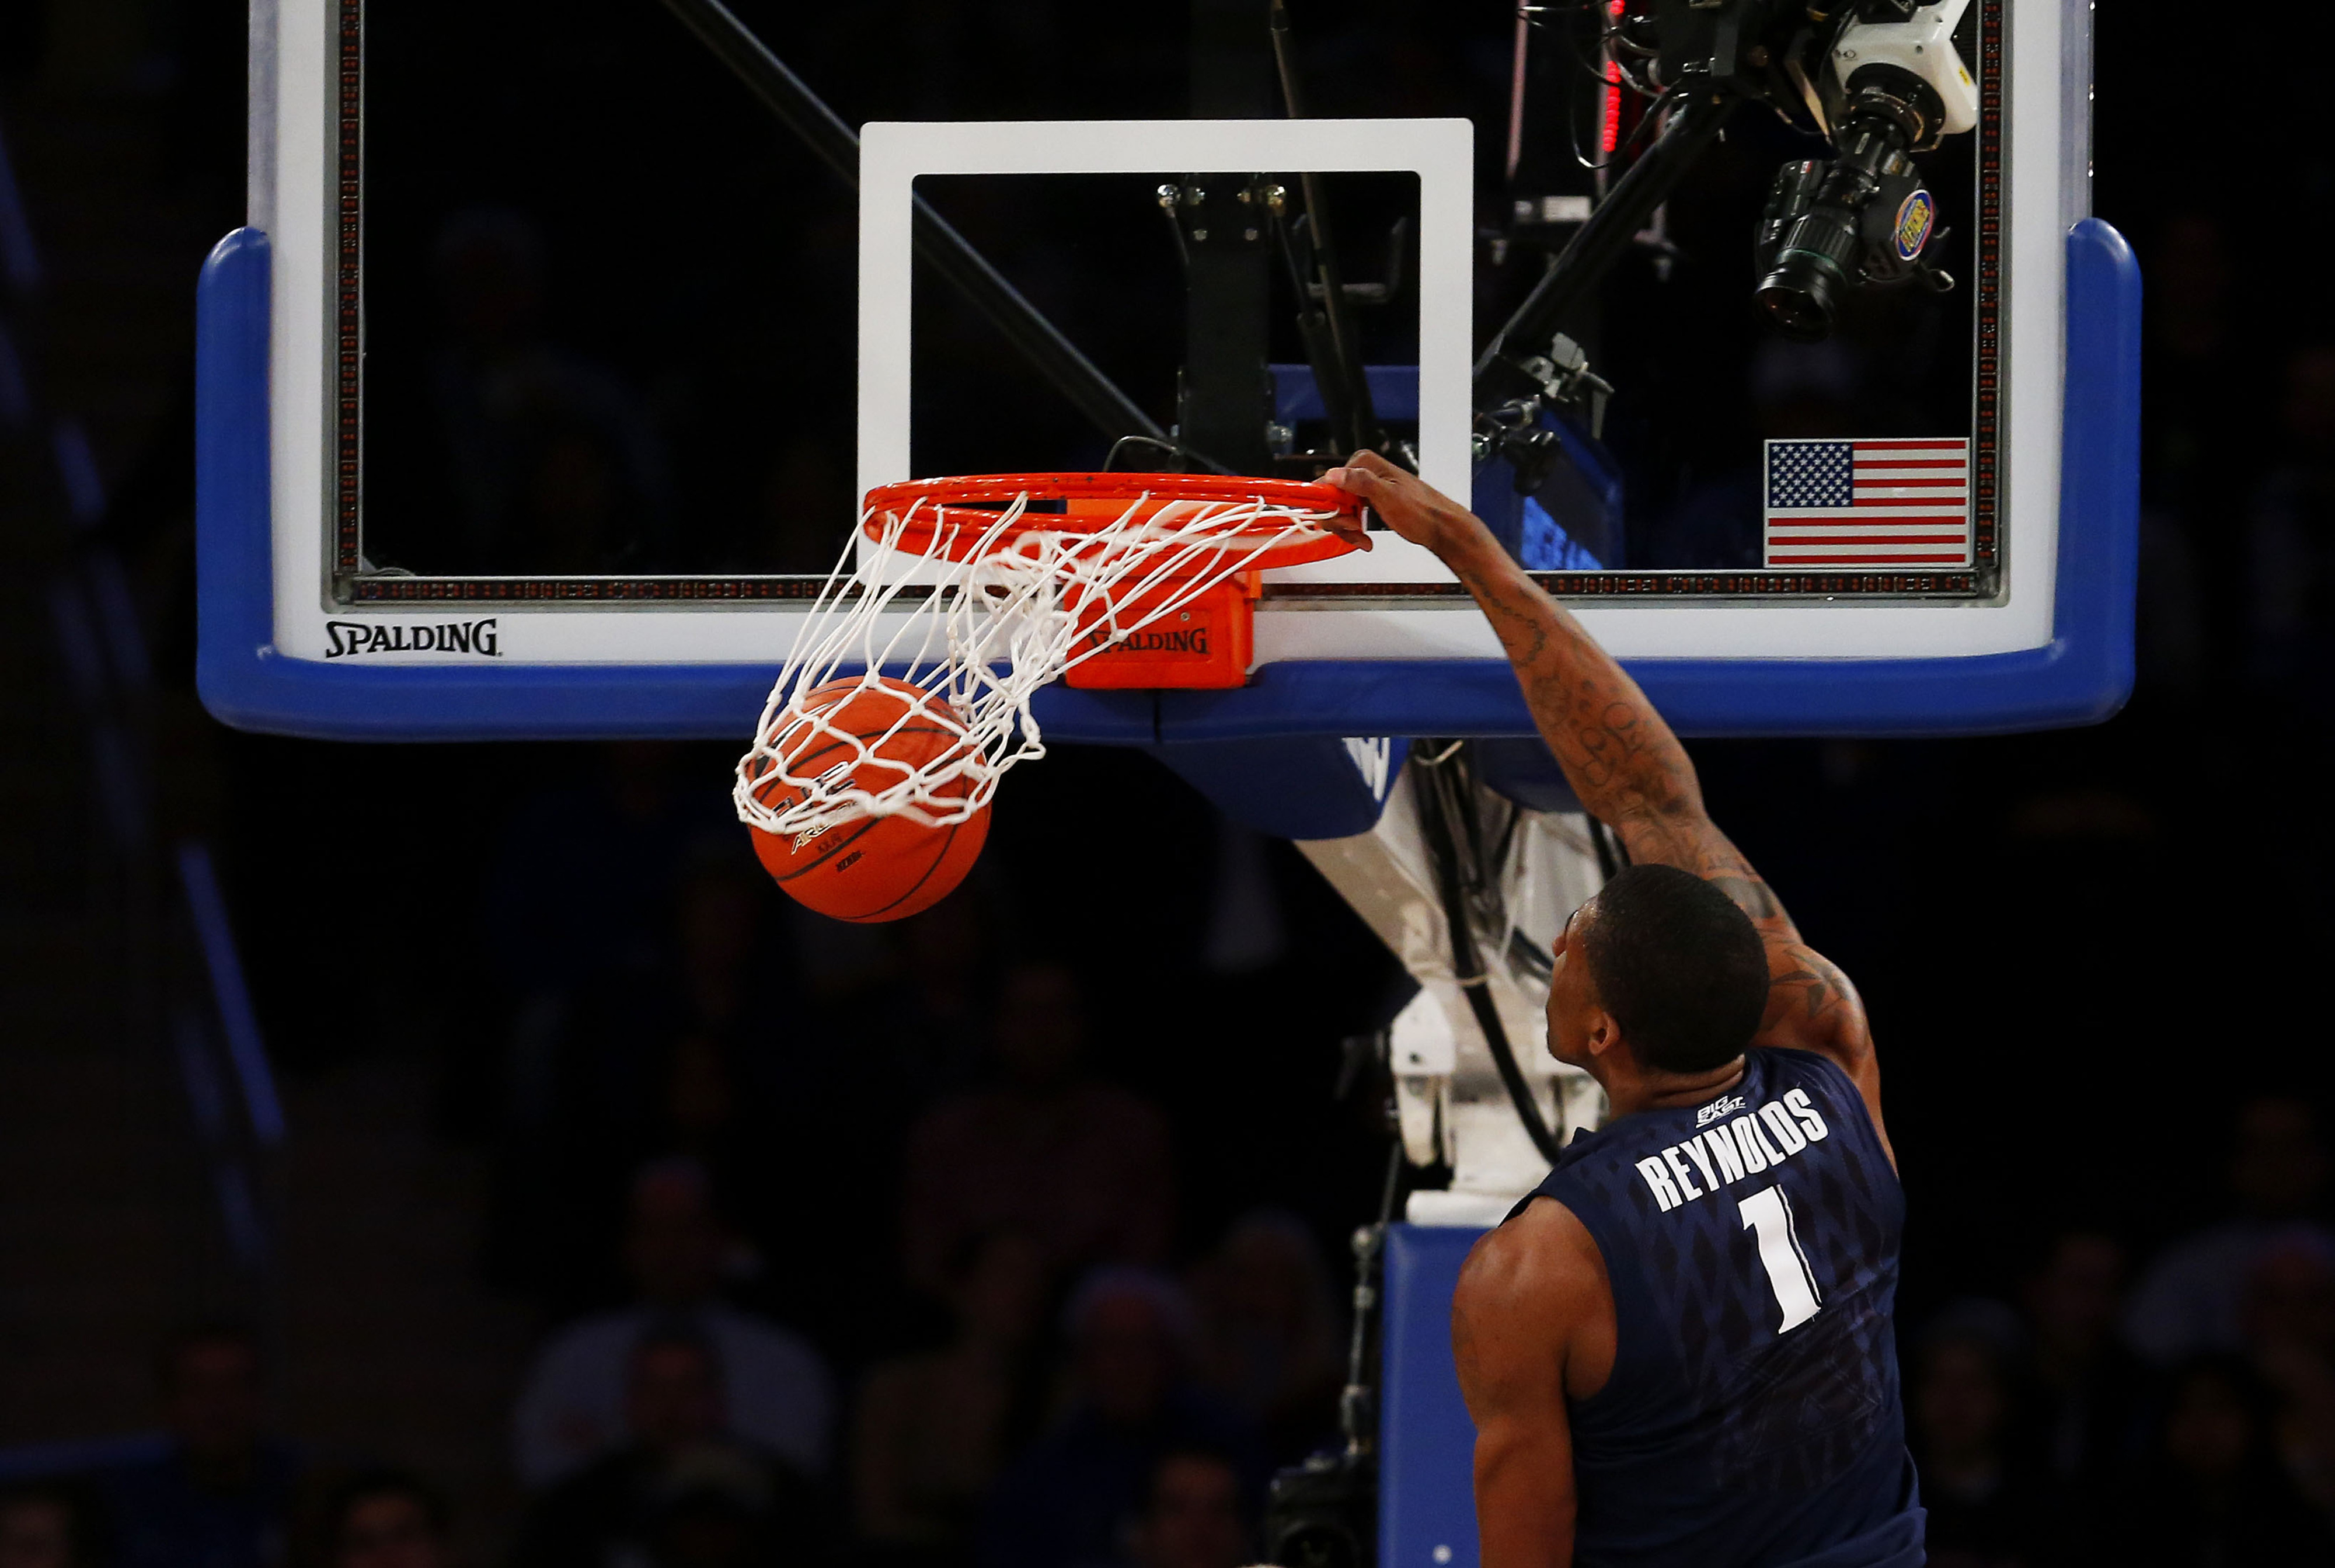 Xavier fans will be hoping to see this a lot this year